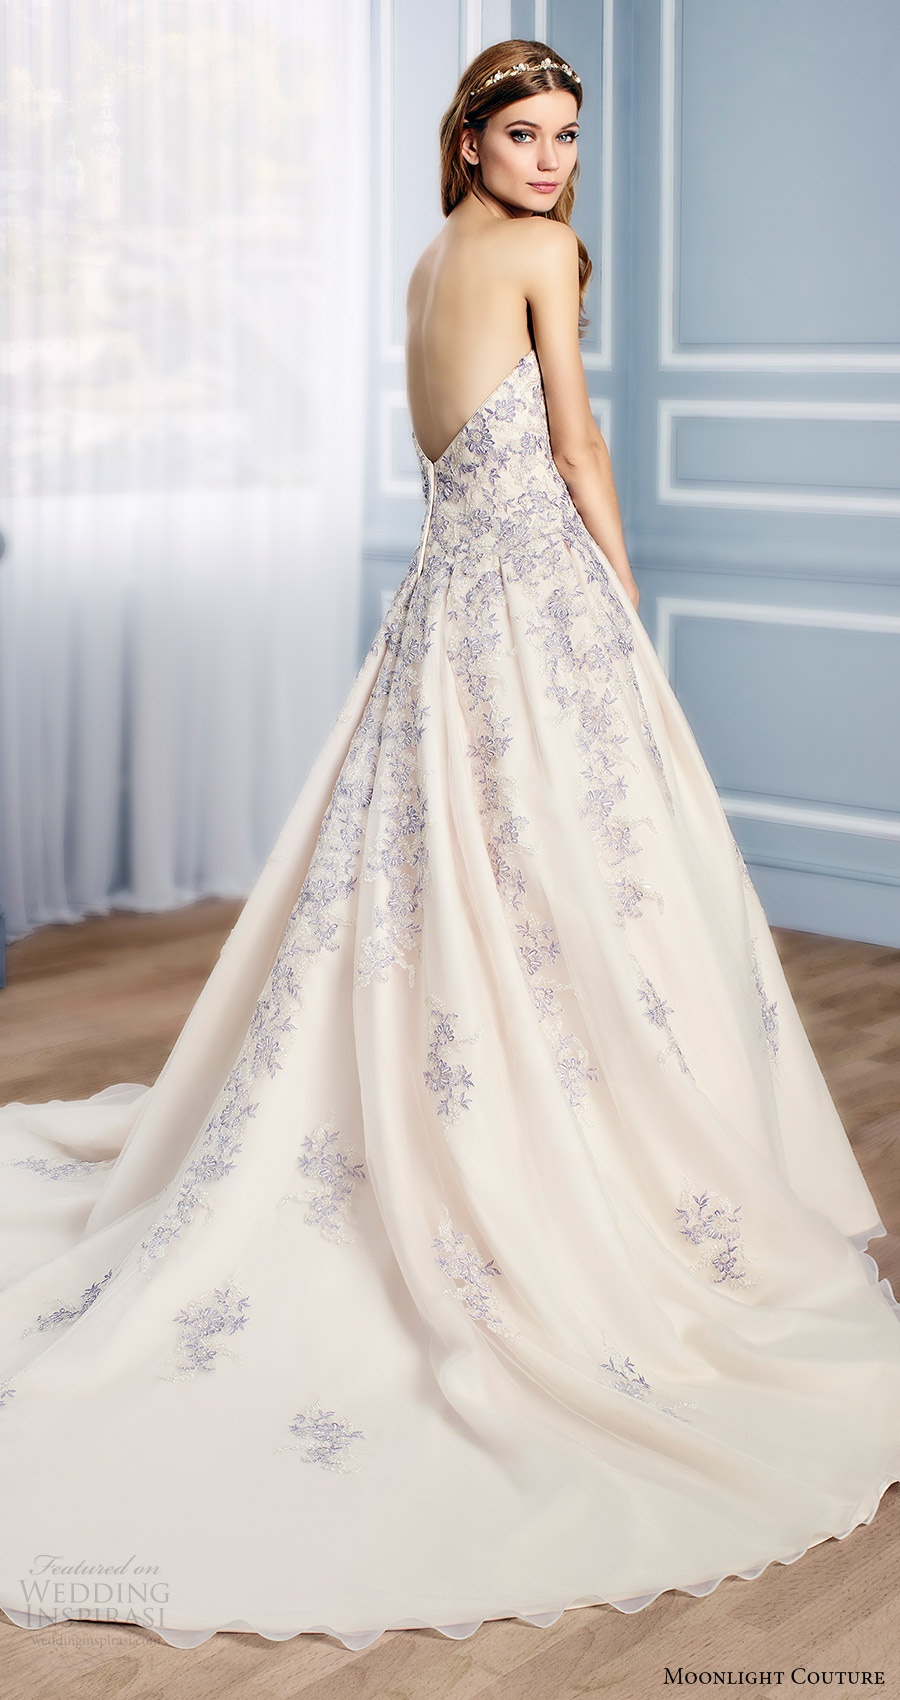 moonlight couture bridal fall 2016 strapless sweetheart lace aline wedding dress (h1311) bv multicolor train